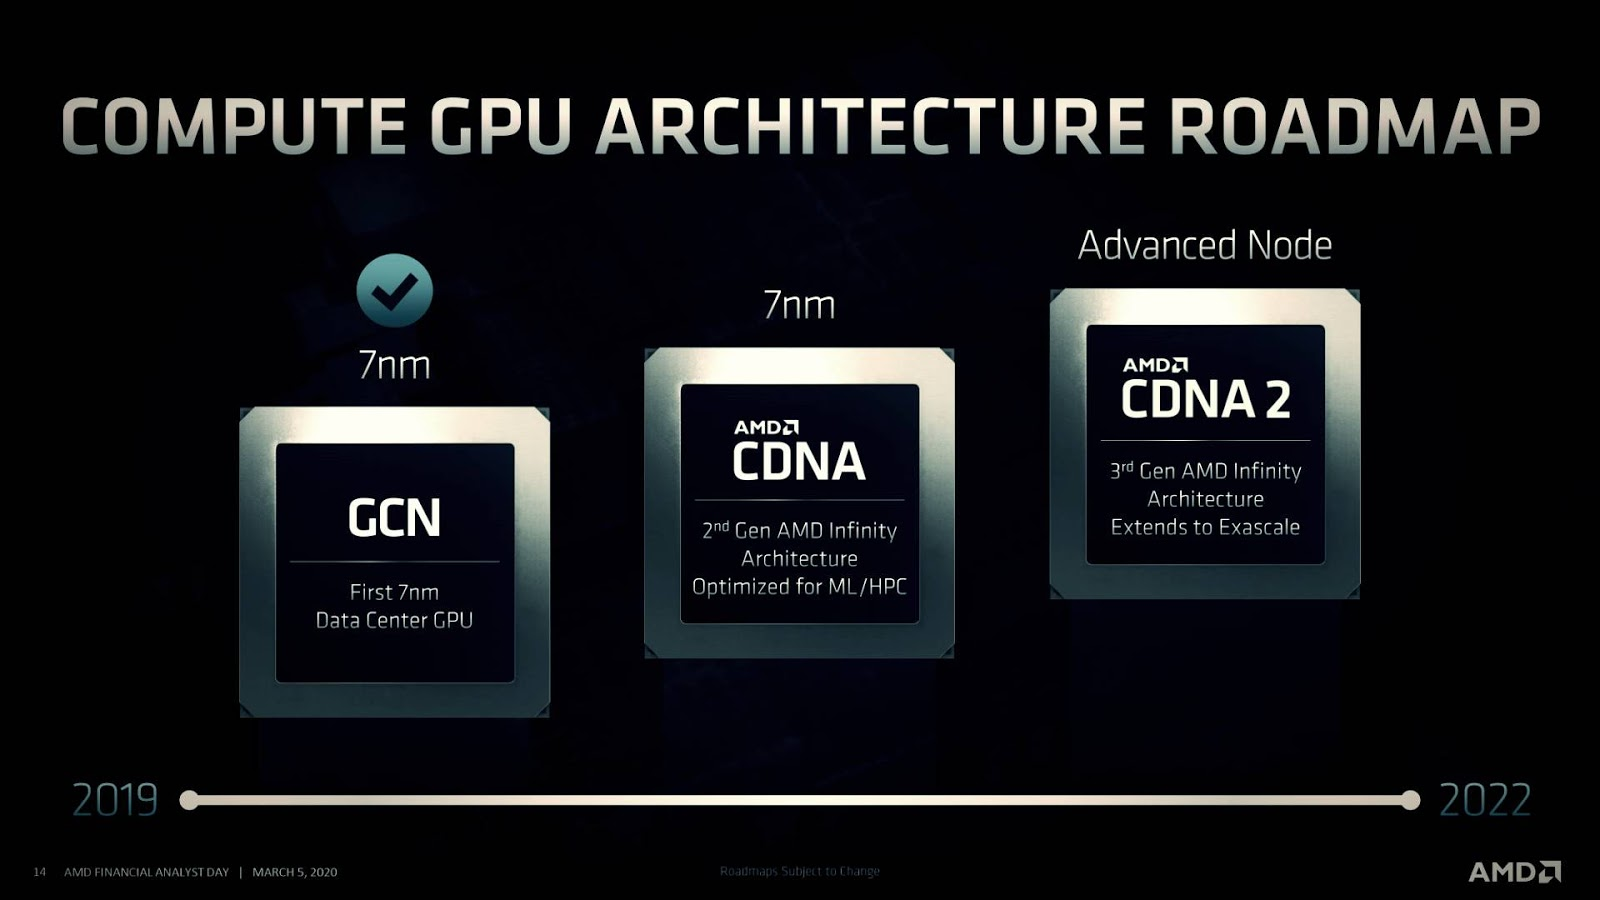 AMD announces new CDNA GPU architecture: dedicated to data center computing